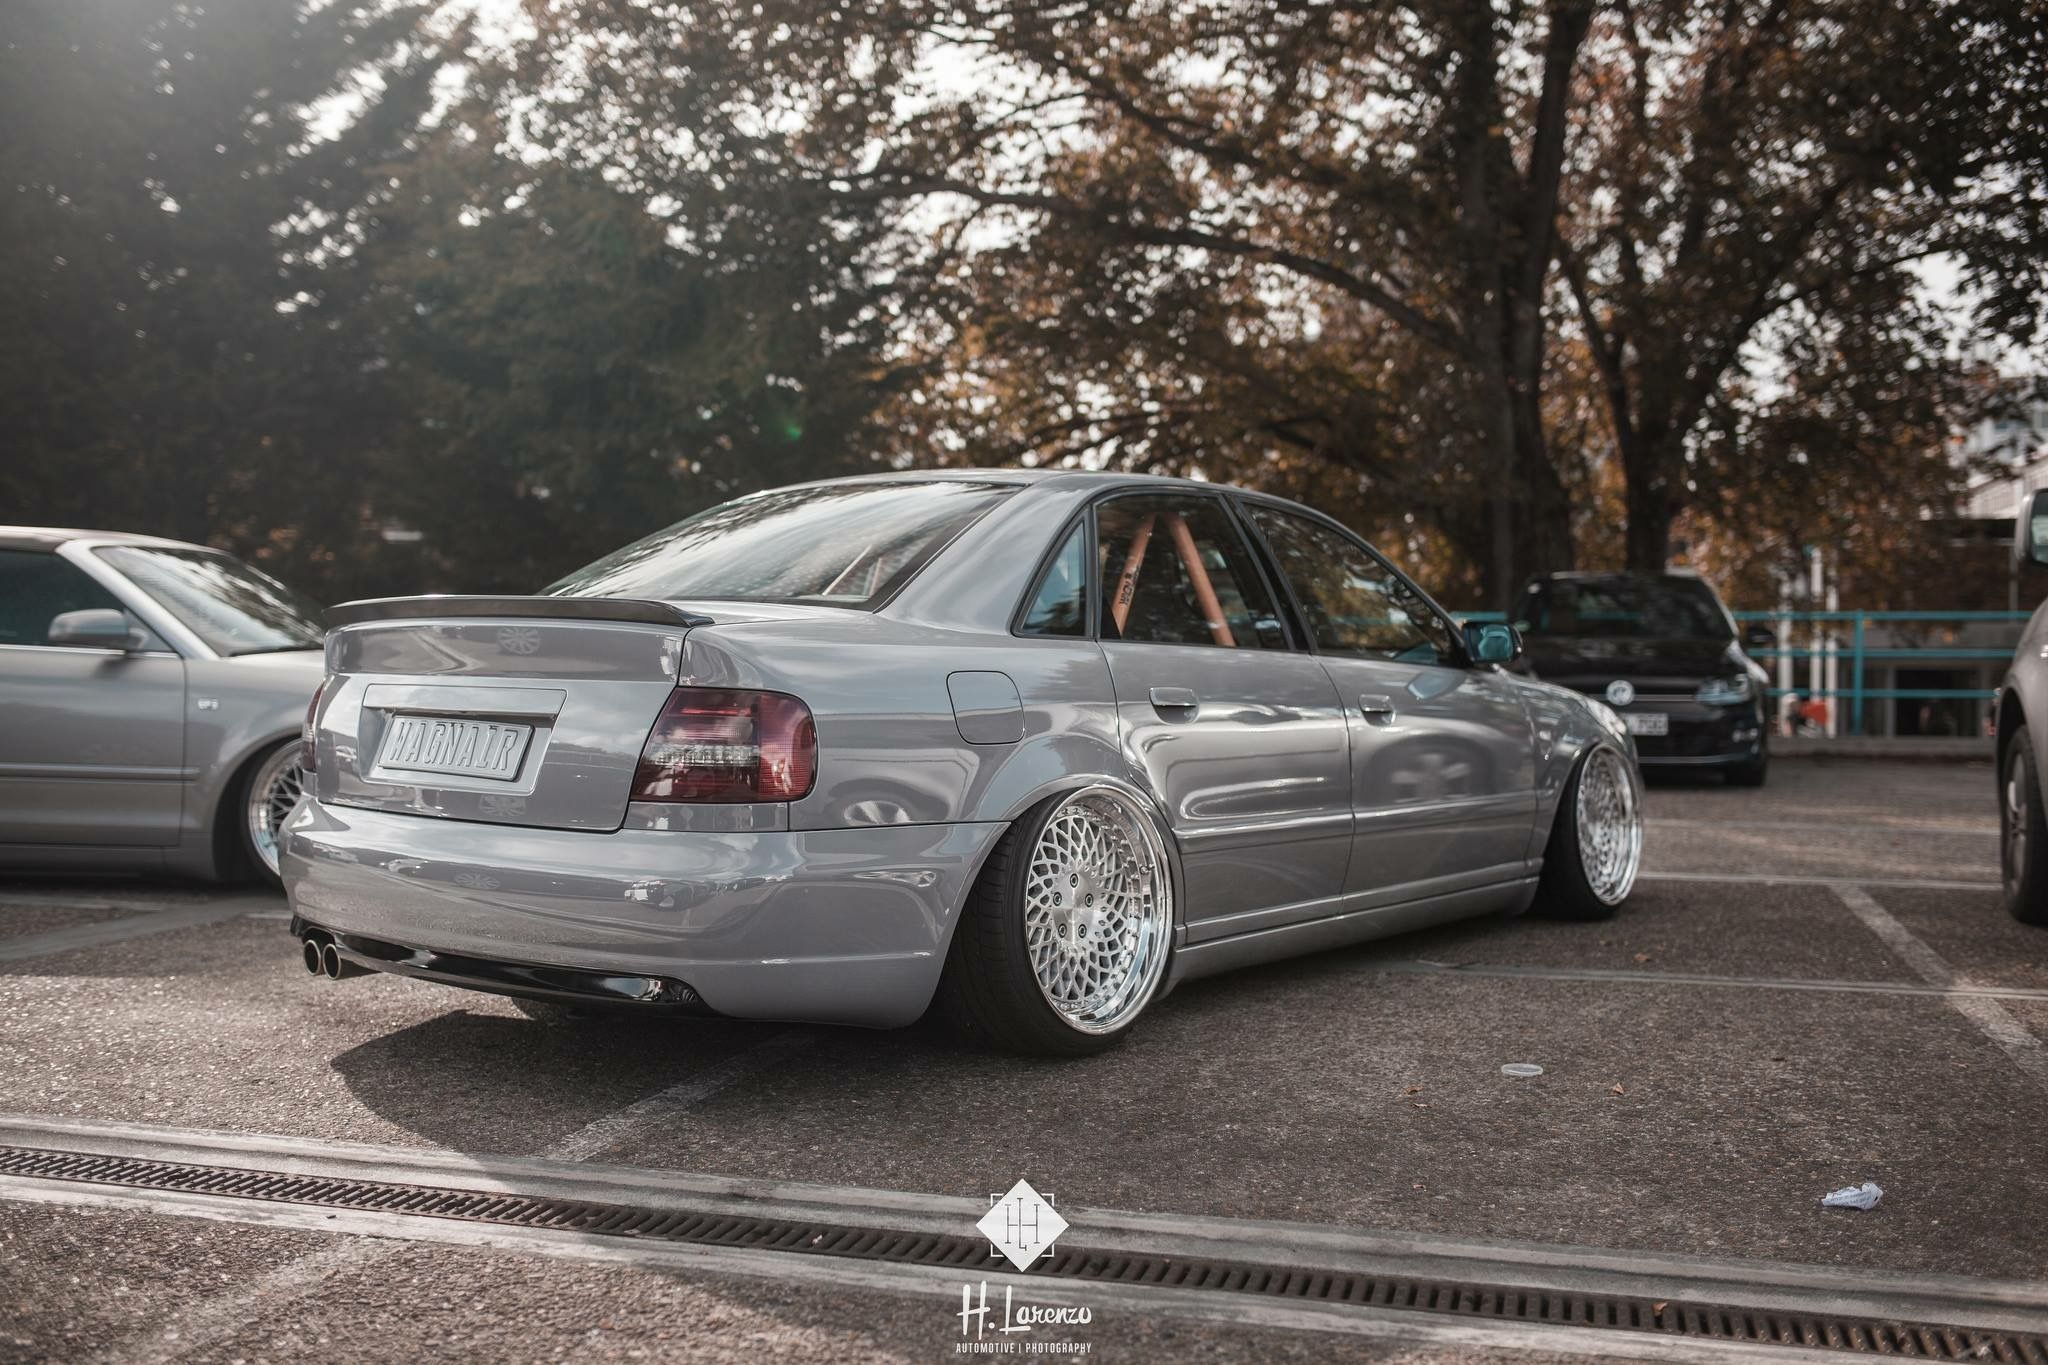 audi a4 b5 modified slammed camber stance audi a4 pinterest audi s4 audi a4 and a4. Black Bedroom Furniture Sets. Home Design Ideas